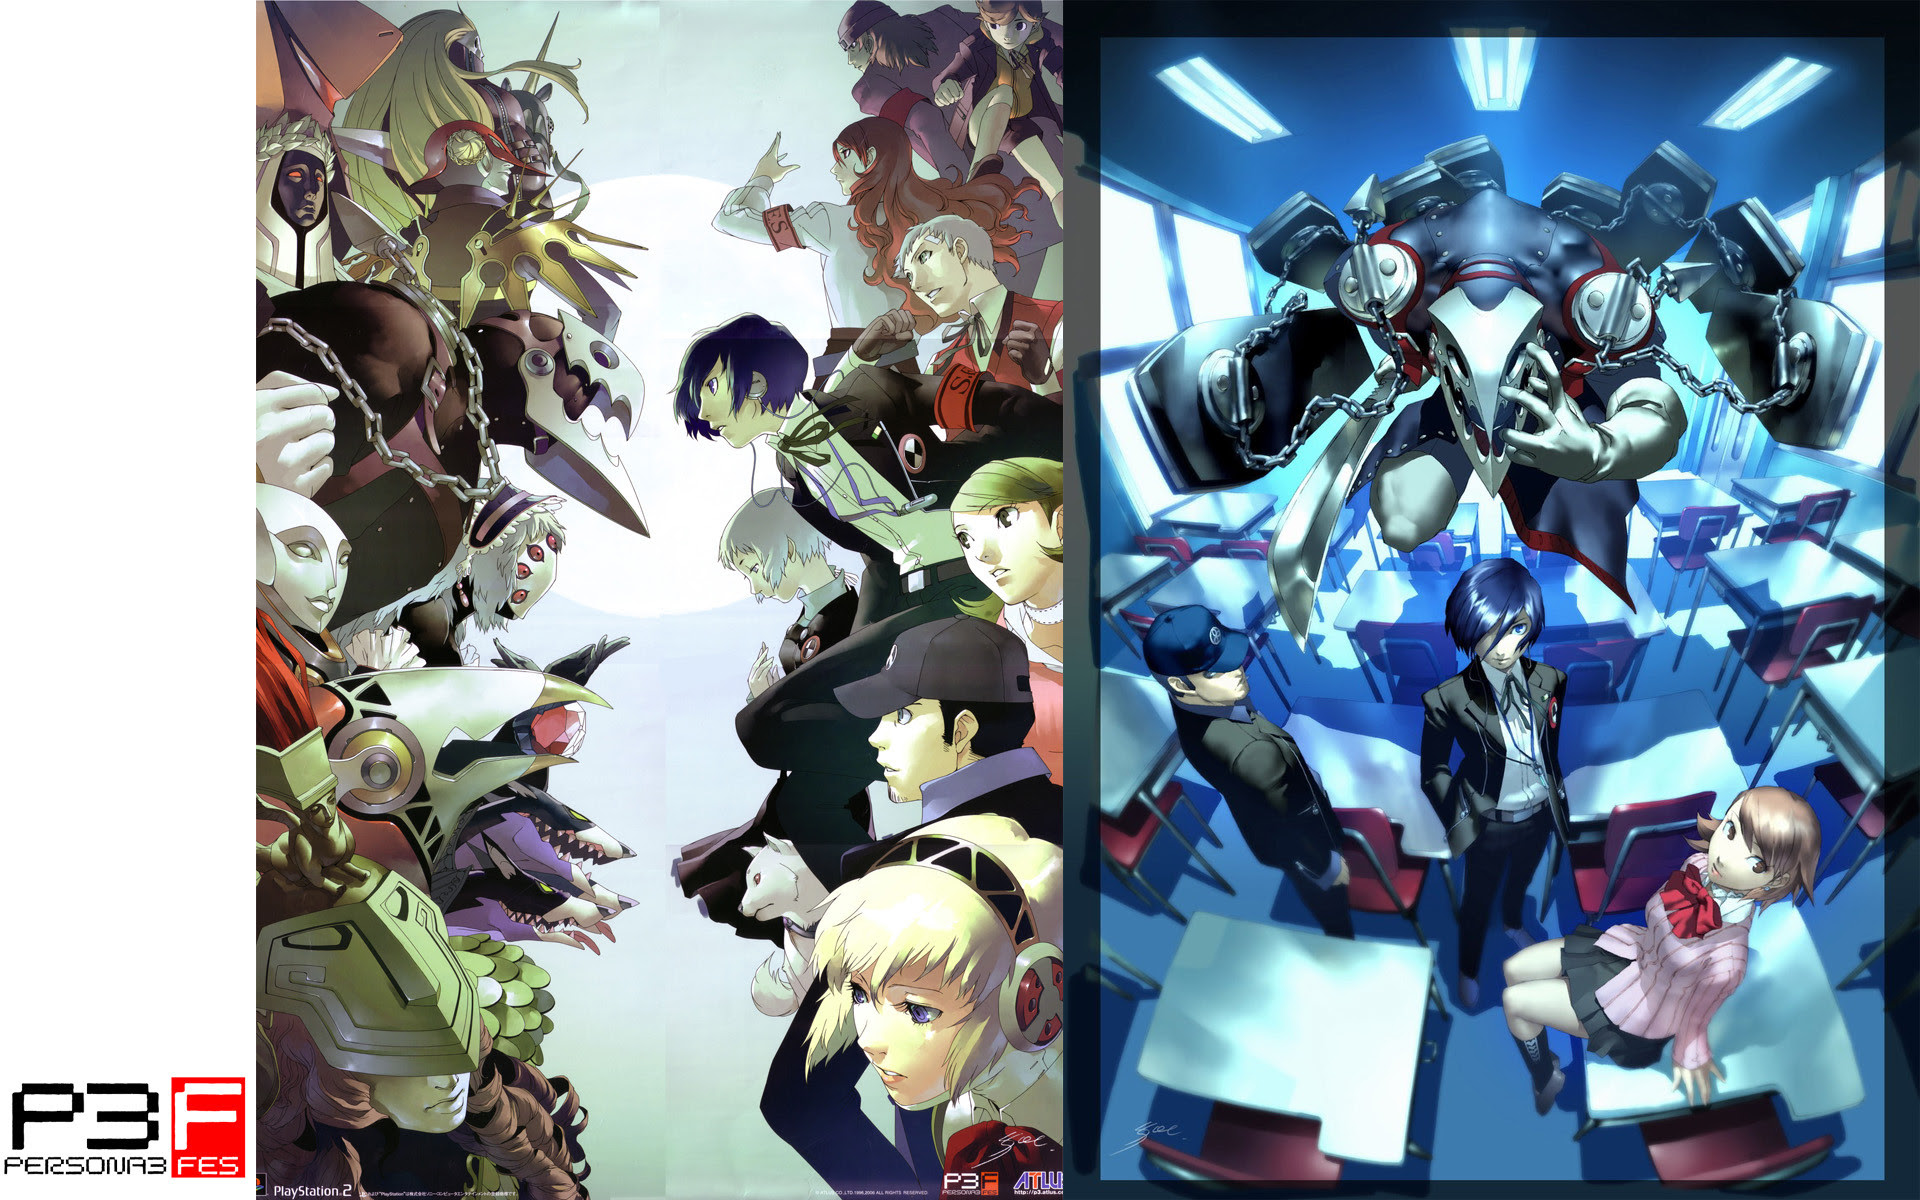 Persona 3 Wallpapers 73 Images